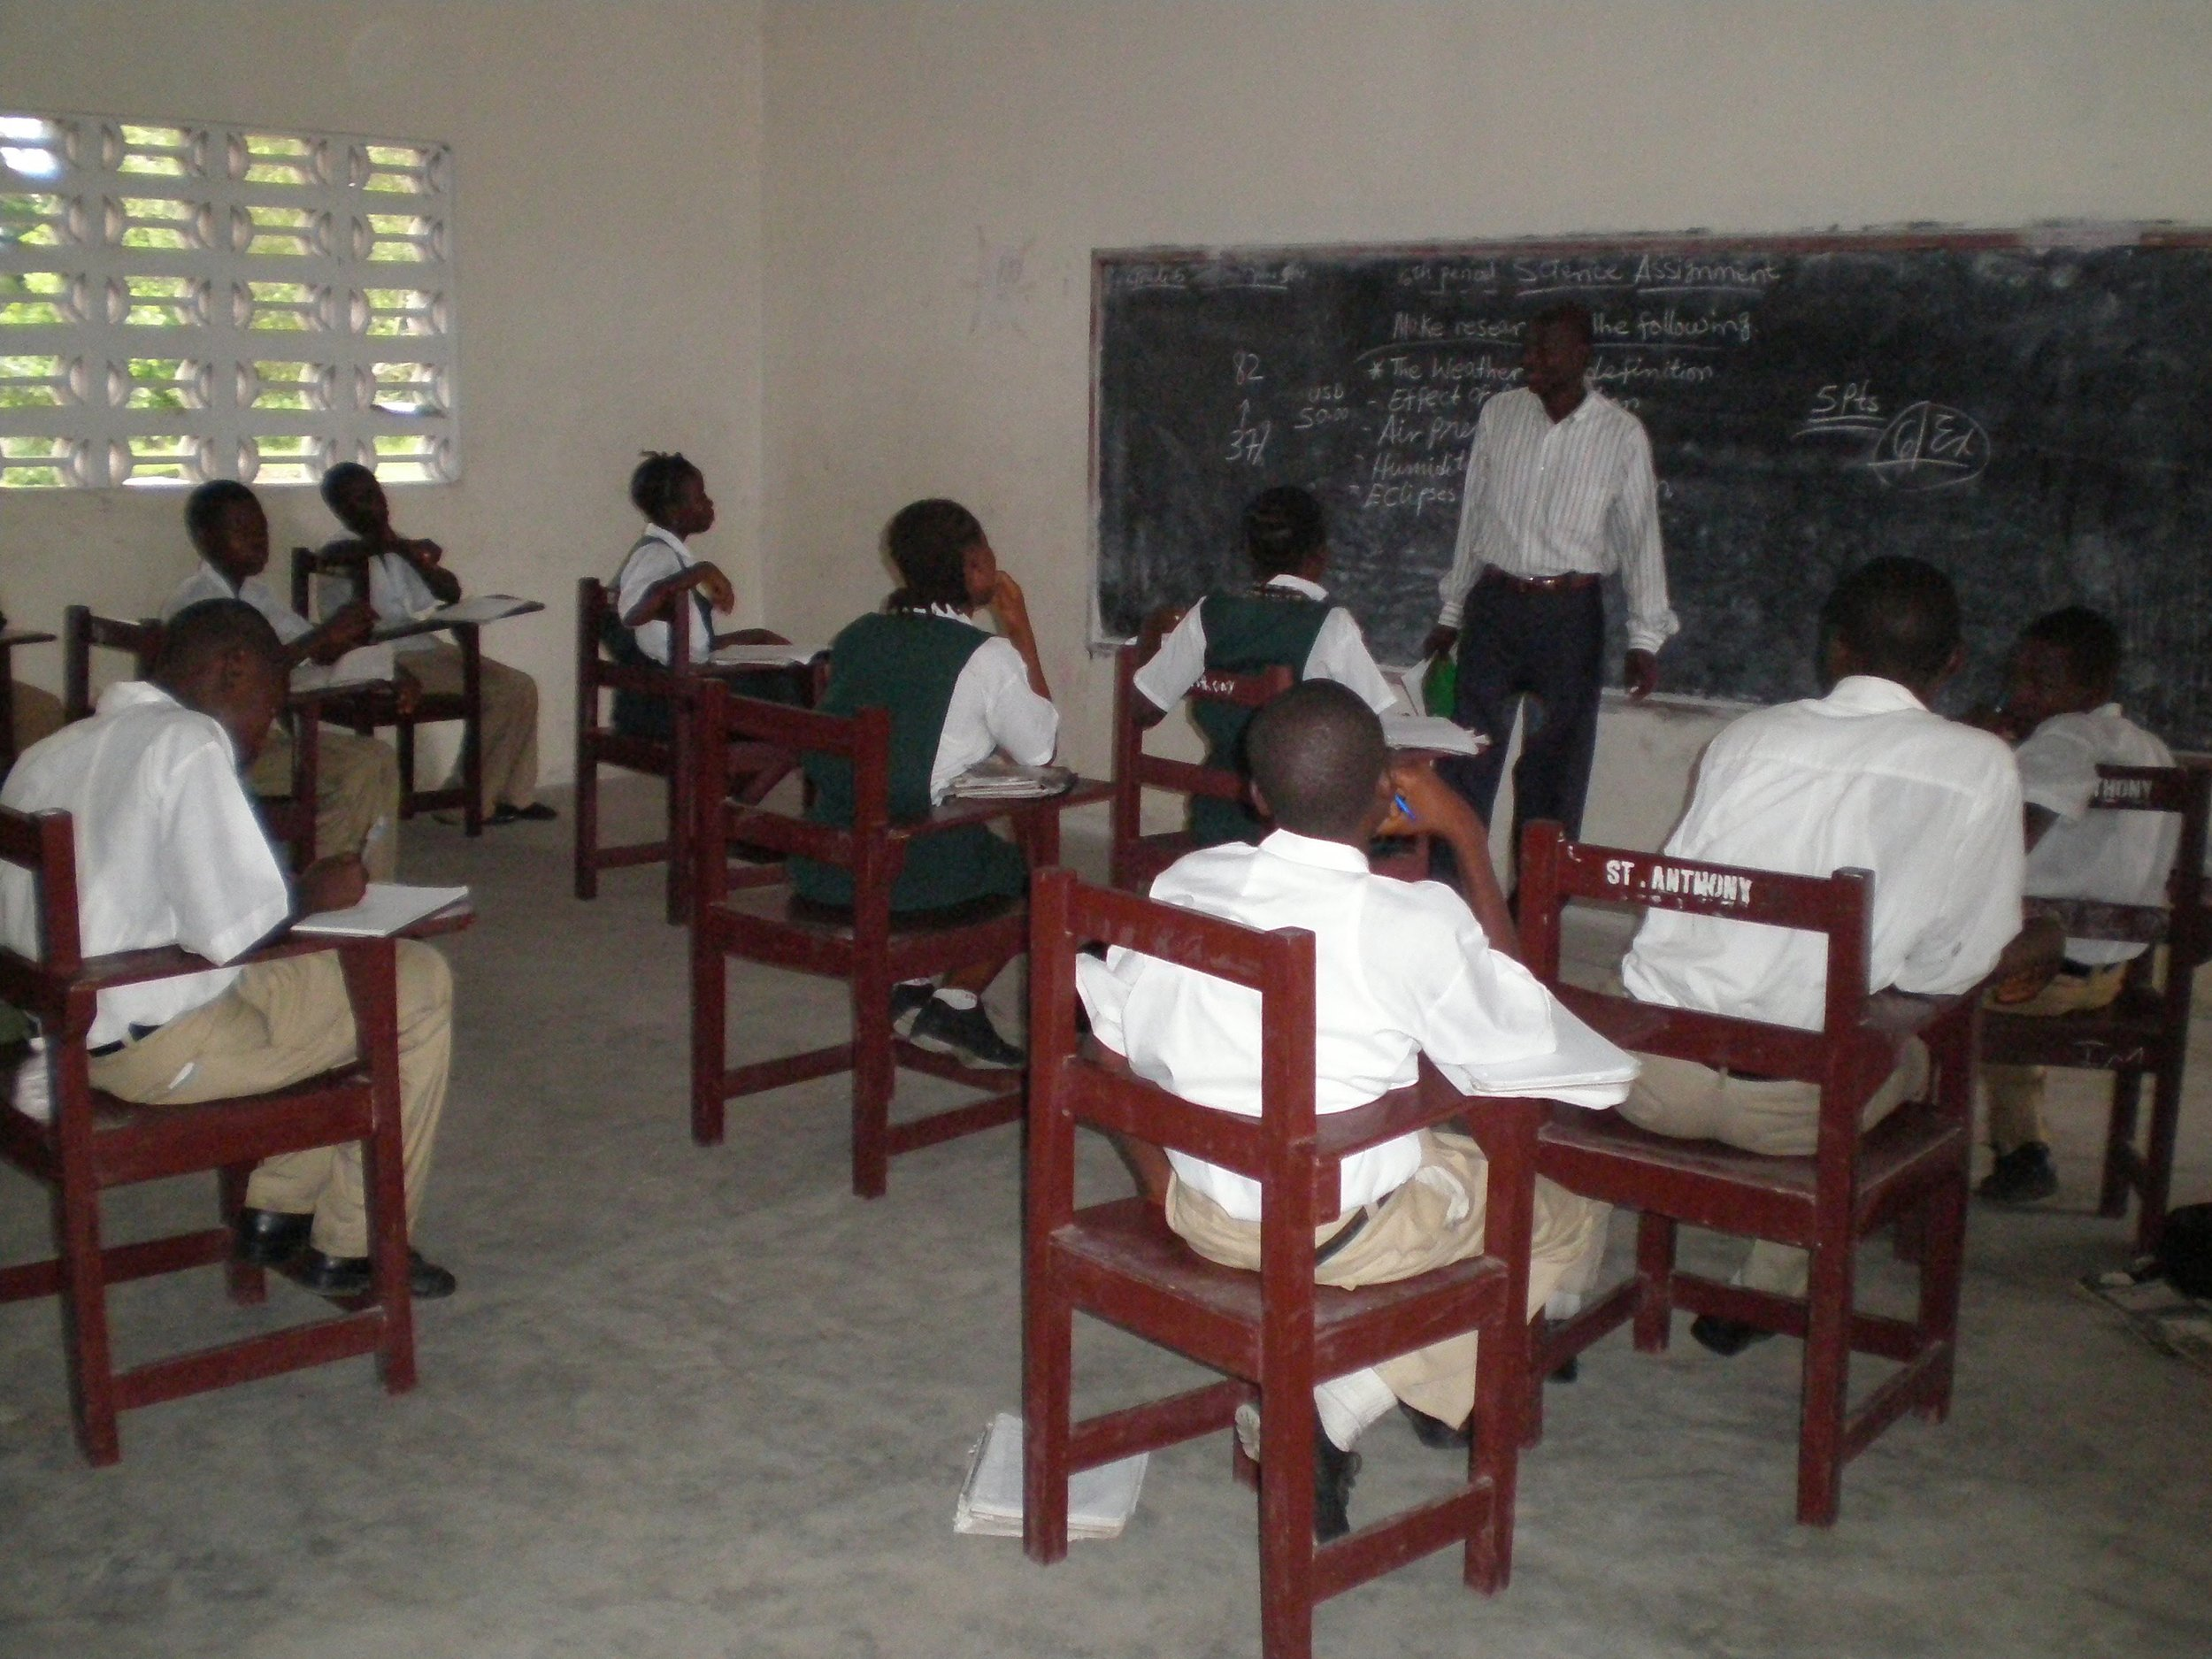 A class at St. Anthony school in 2008.